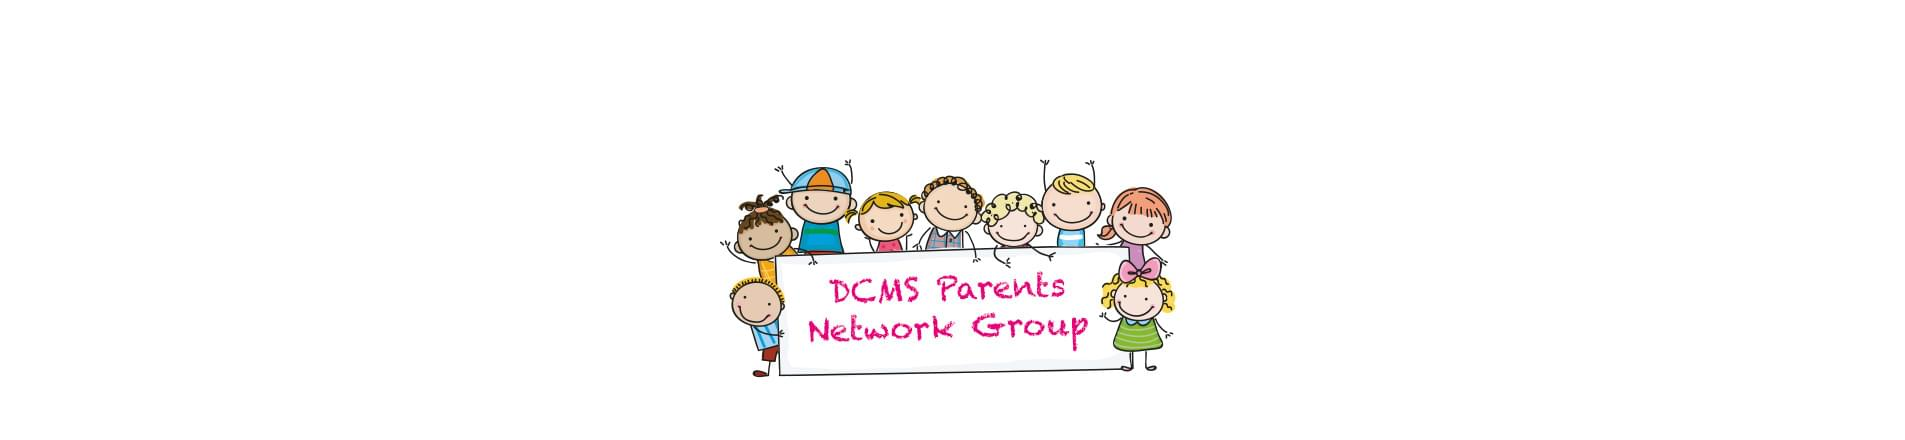 An icons of kids holding a sign DCMS Parents Network Group